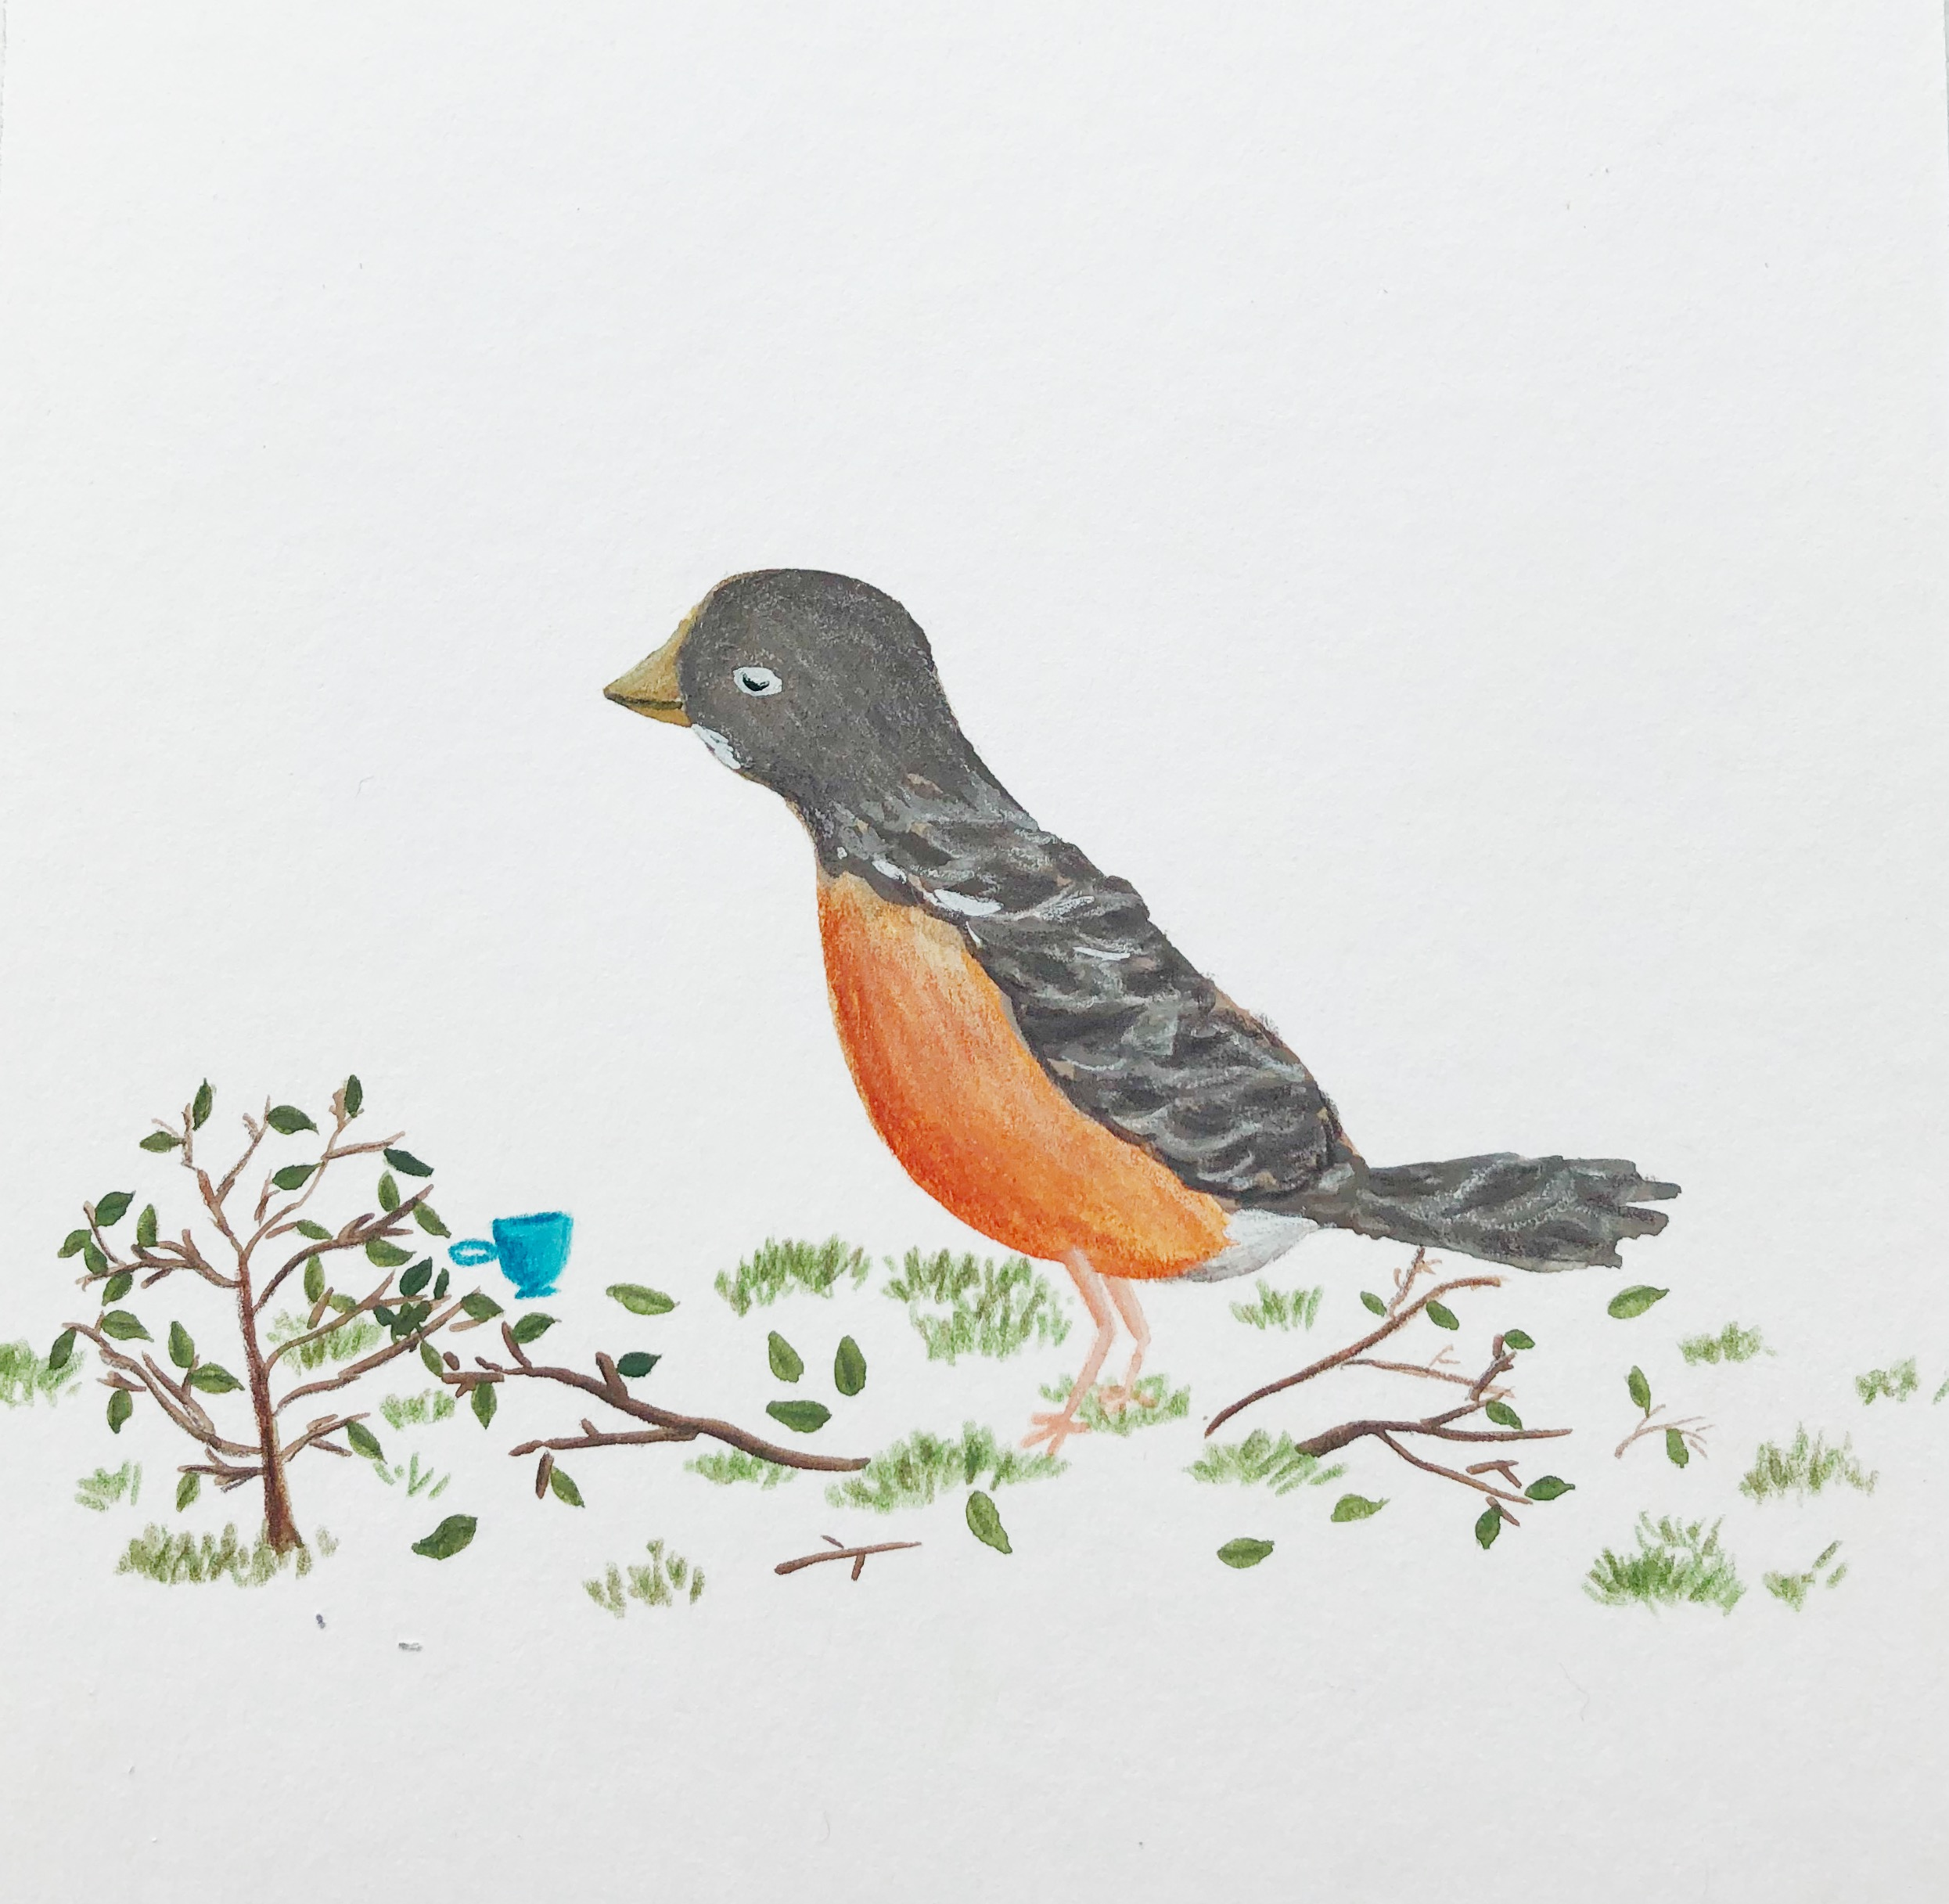 Robin by Wandering in Whimsy